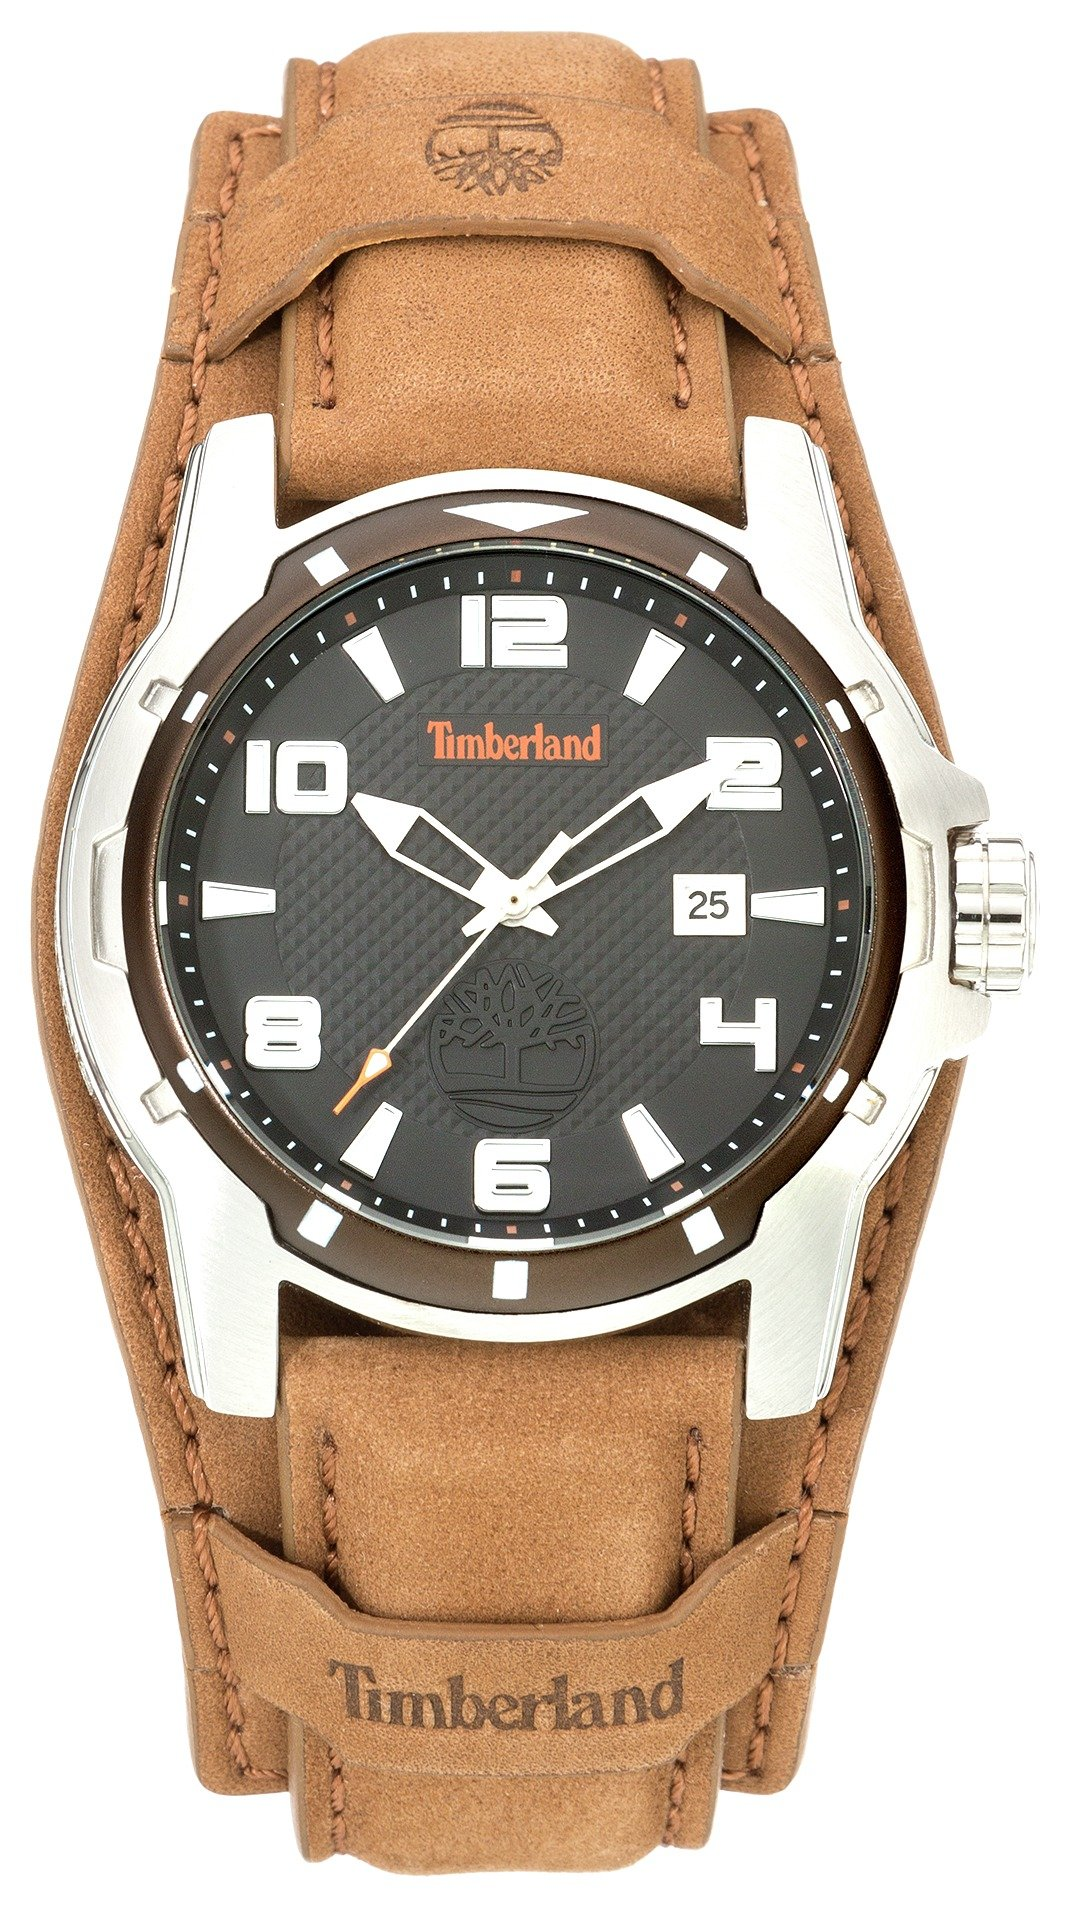 TIMBERLAND - MENS DURHAM BLACK DIAL LEATHER STRAP - WATCH